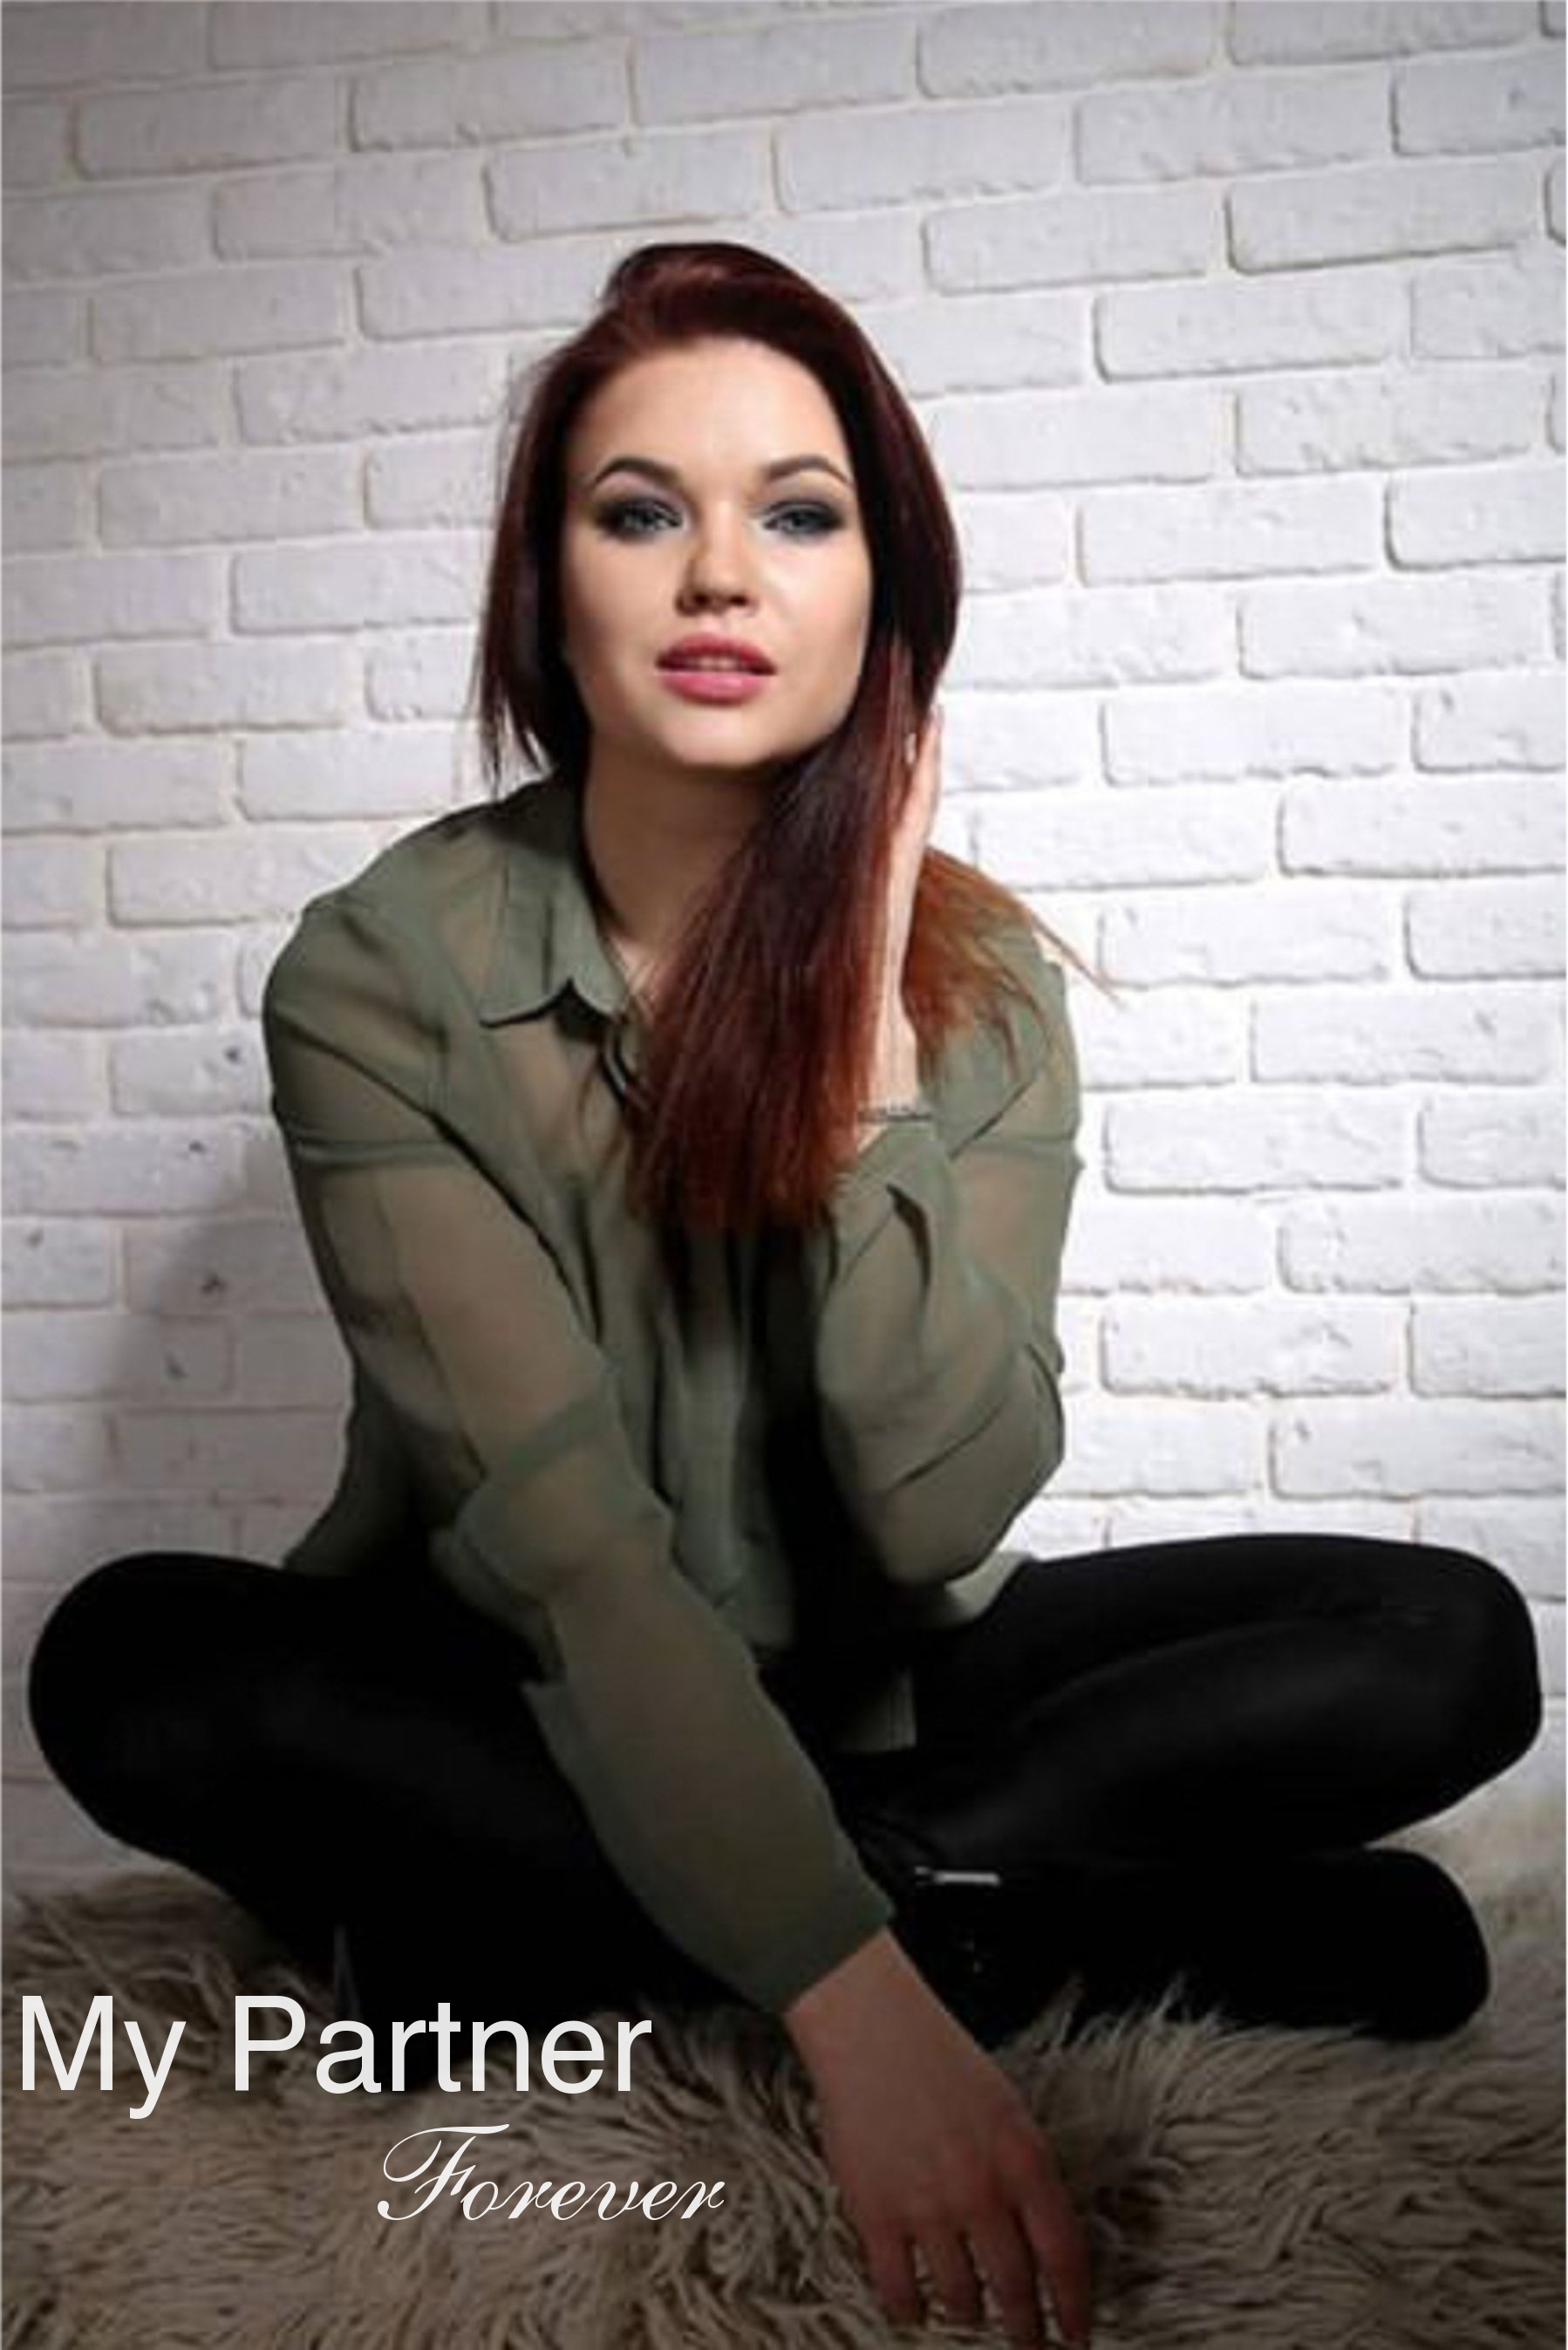 Gorgeous Woman from Ukraine - Anastasiya from Vinnitsa, Ukraine